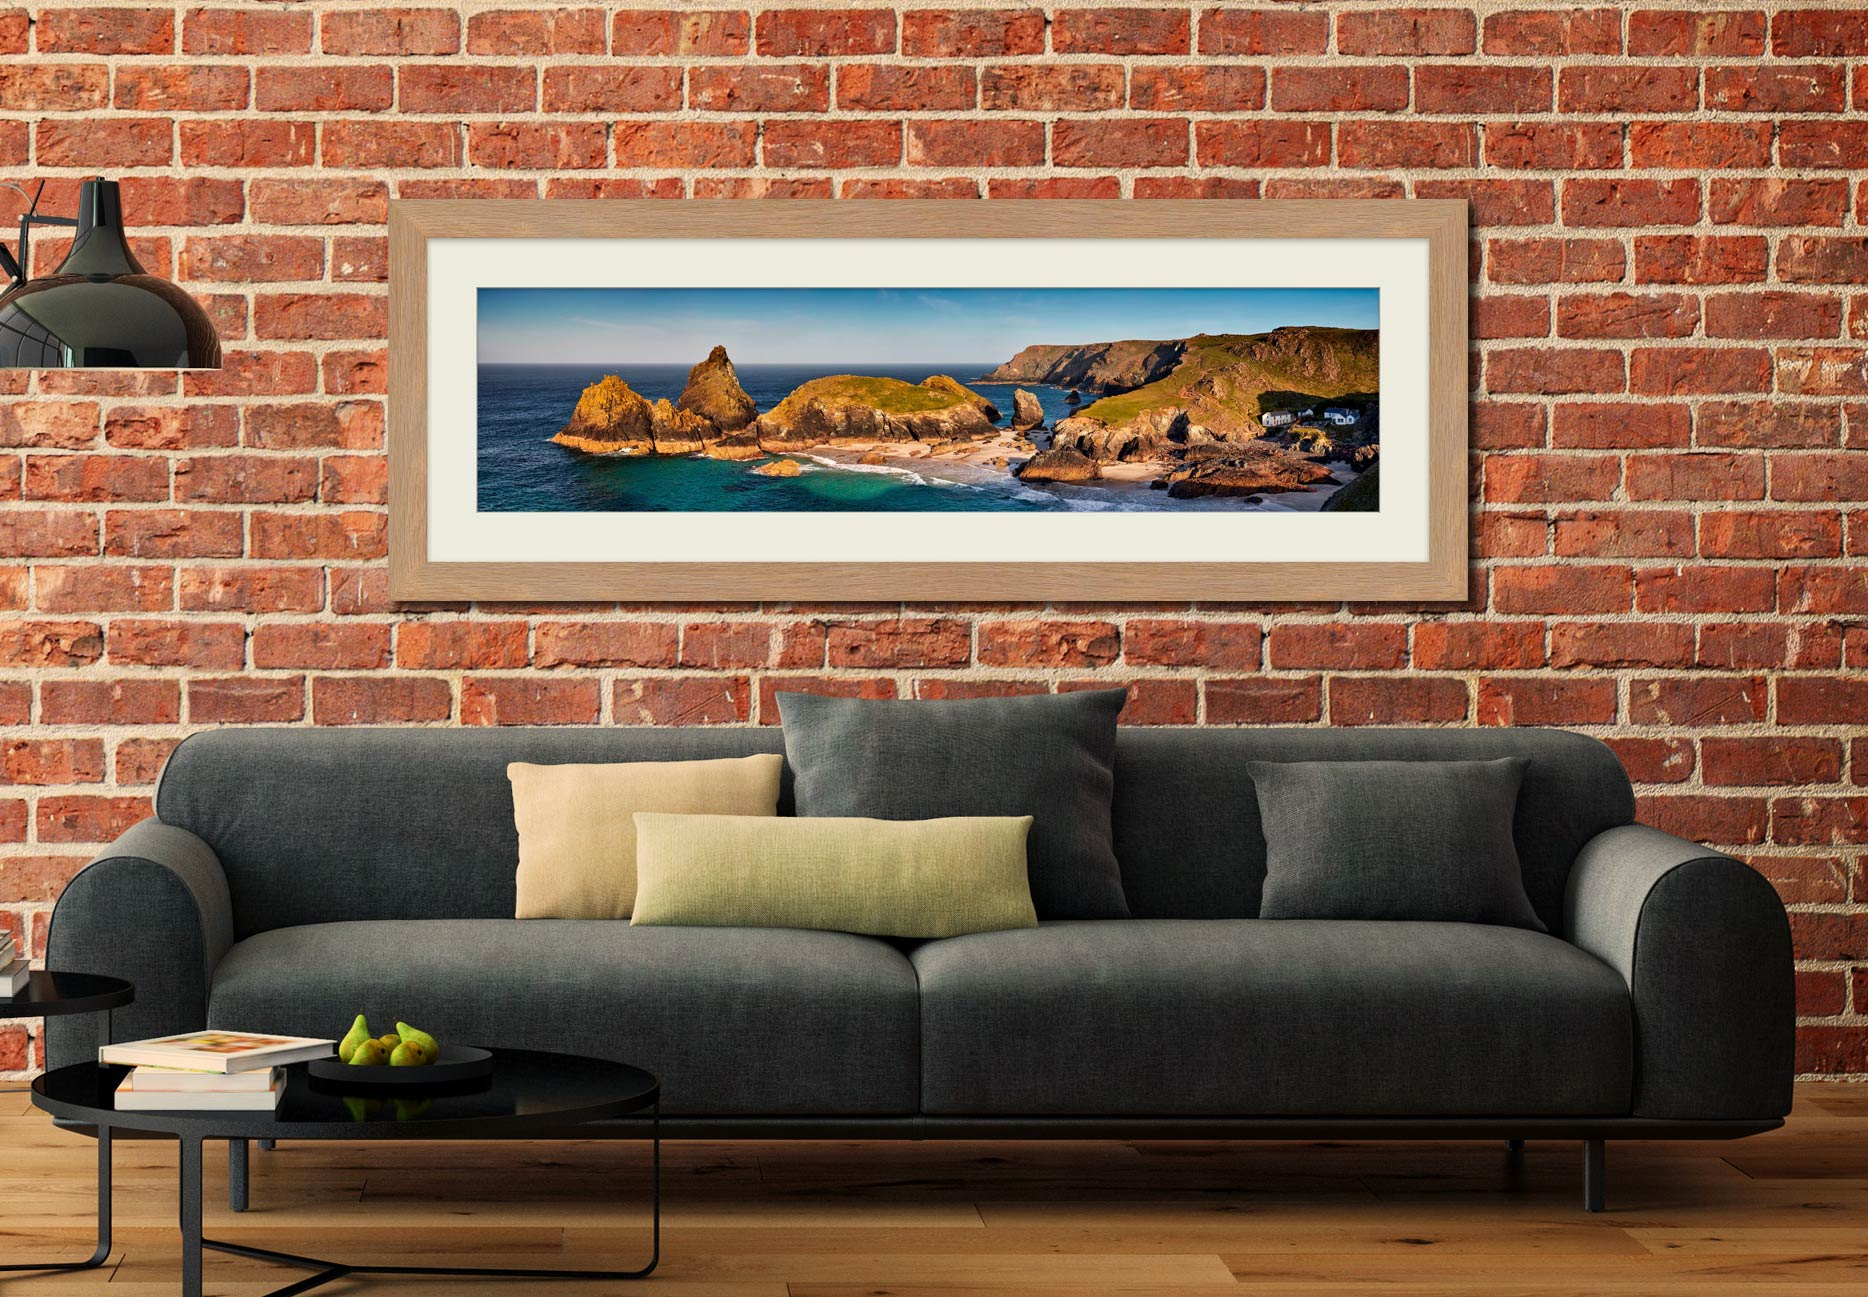 Kynance Cove Morning Sunlight - Framed Print with Mount on Wall